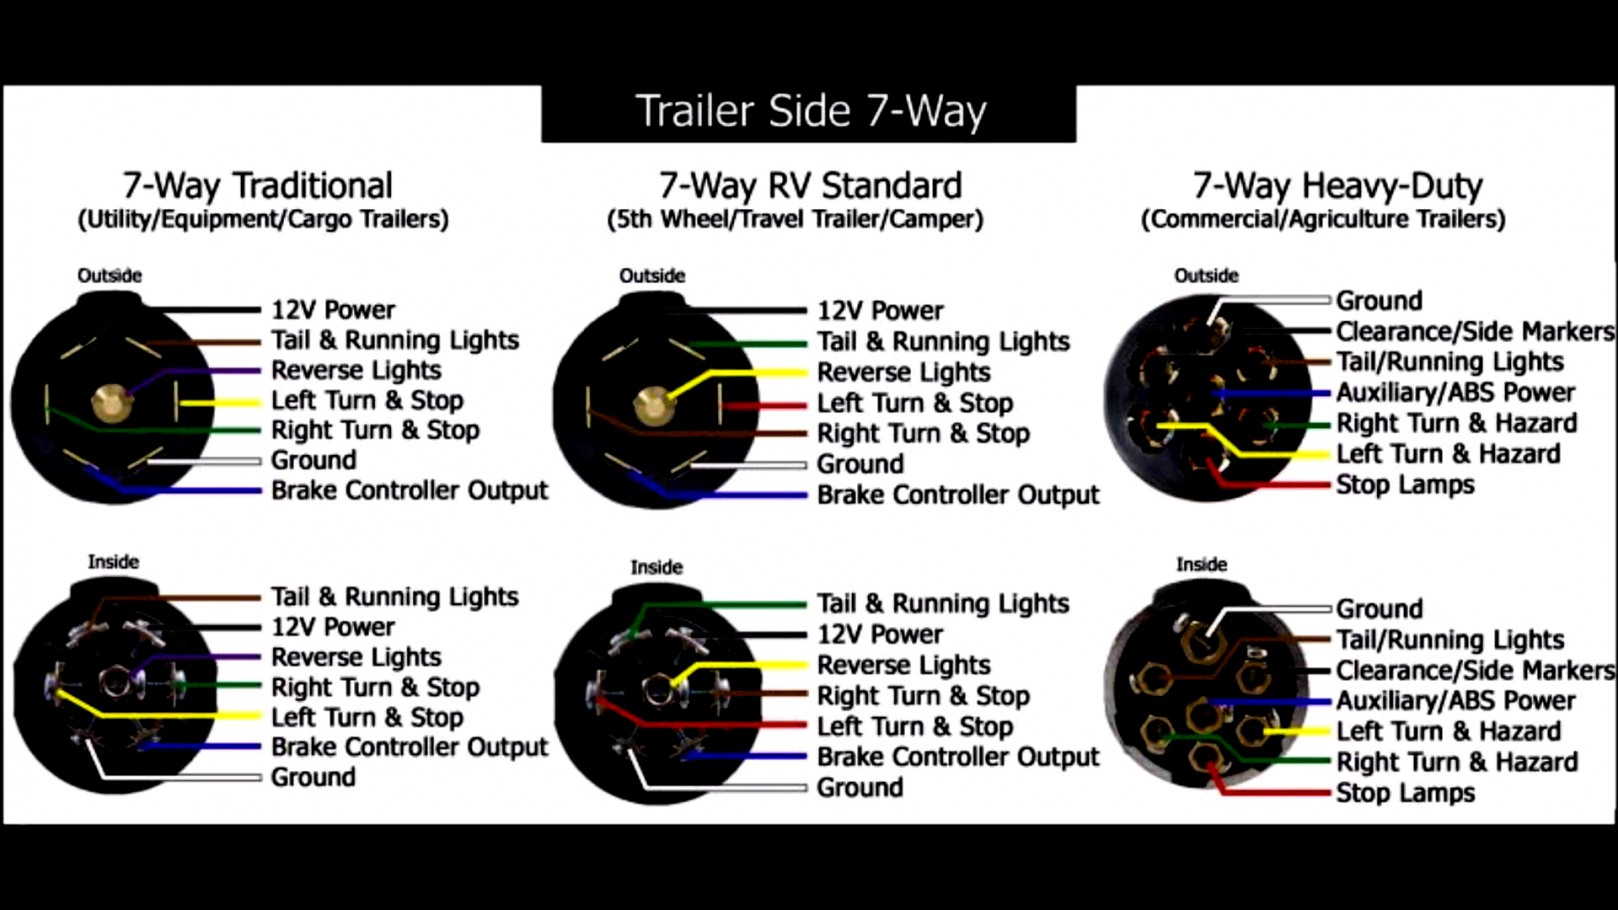 Standard 7 Wire 5Th Wheel Diagram - Data Wiring Diagram Today - 7 Wire Tractor Trailer Wiring Diagram